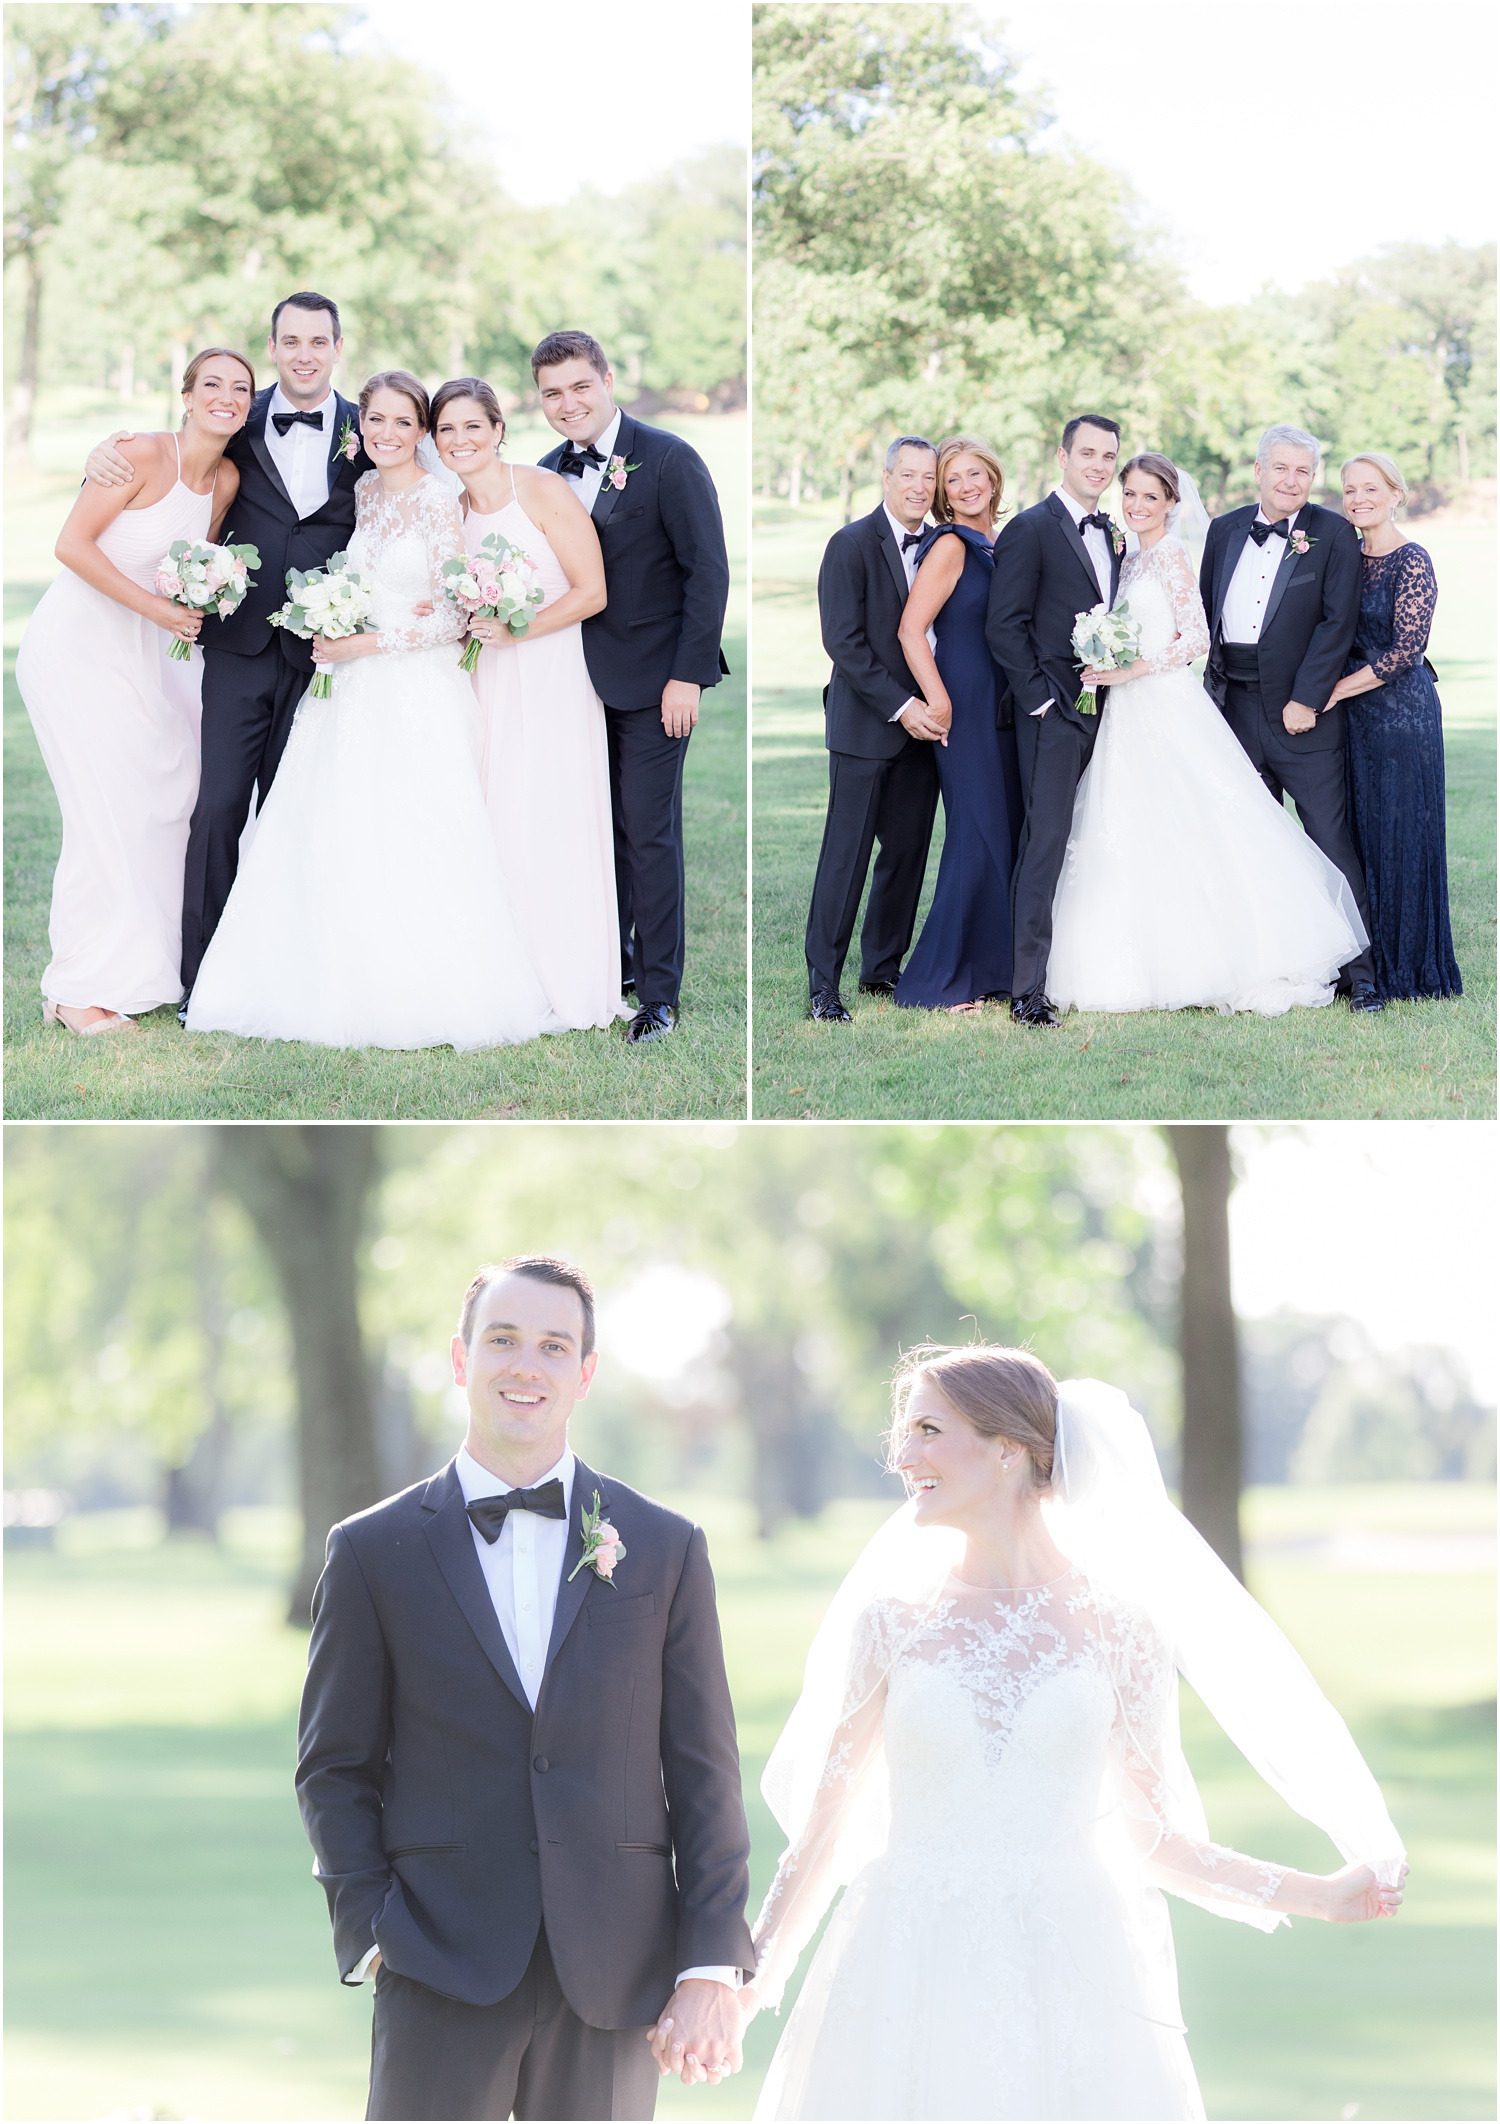 Family portraits for a wedding at Canoe Brook Country Club